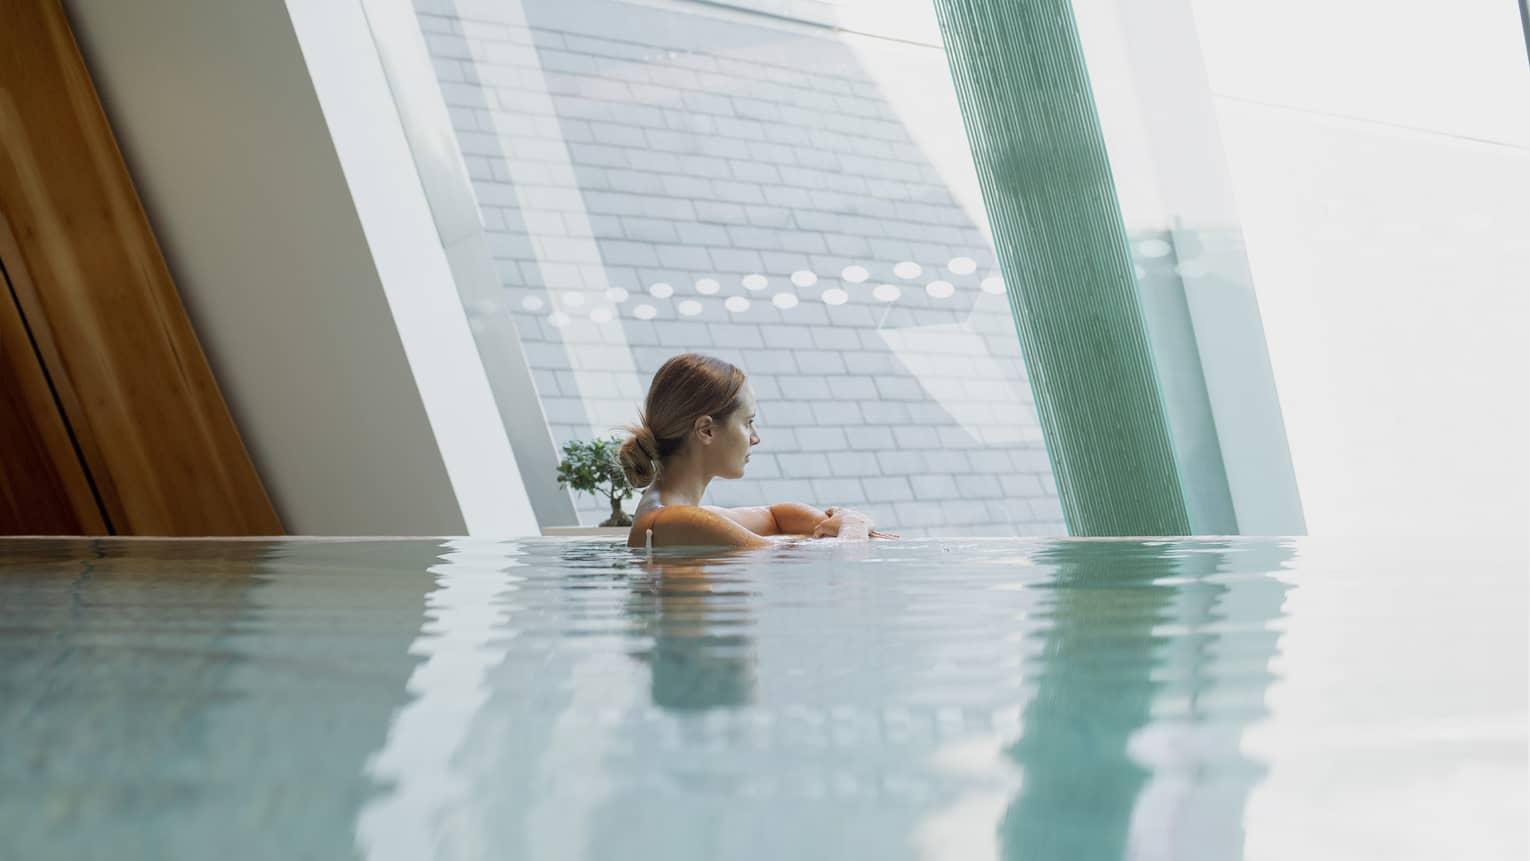 Woman in infinity-edge pool looking out window